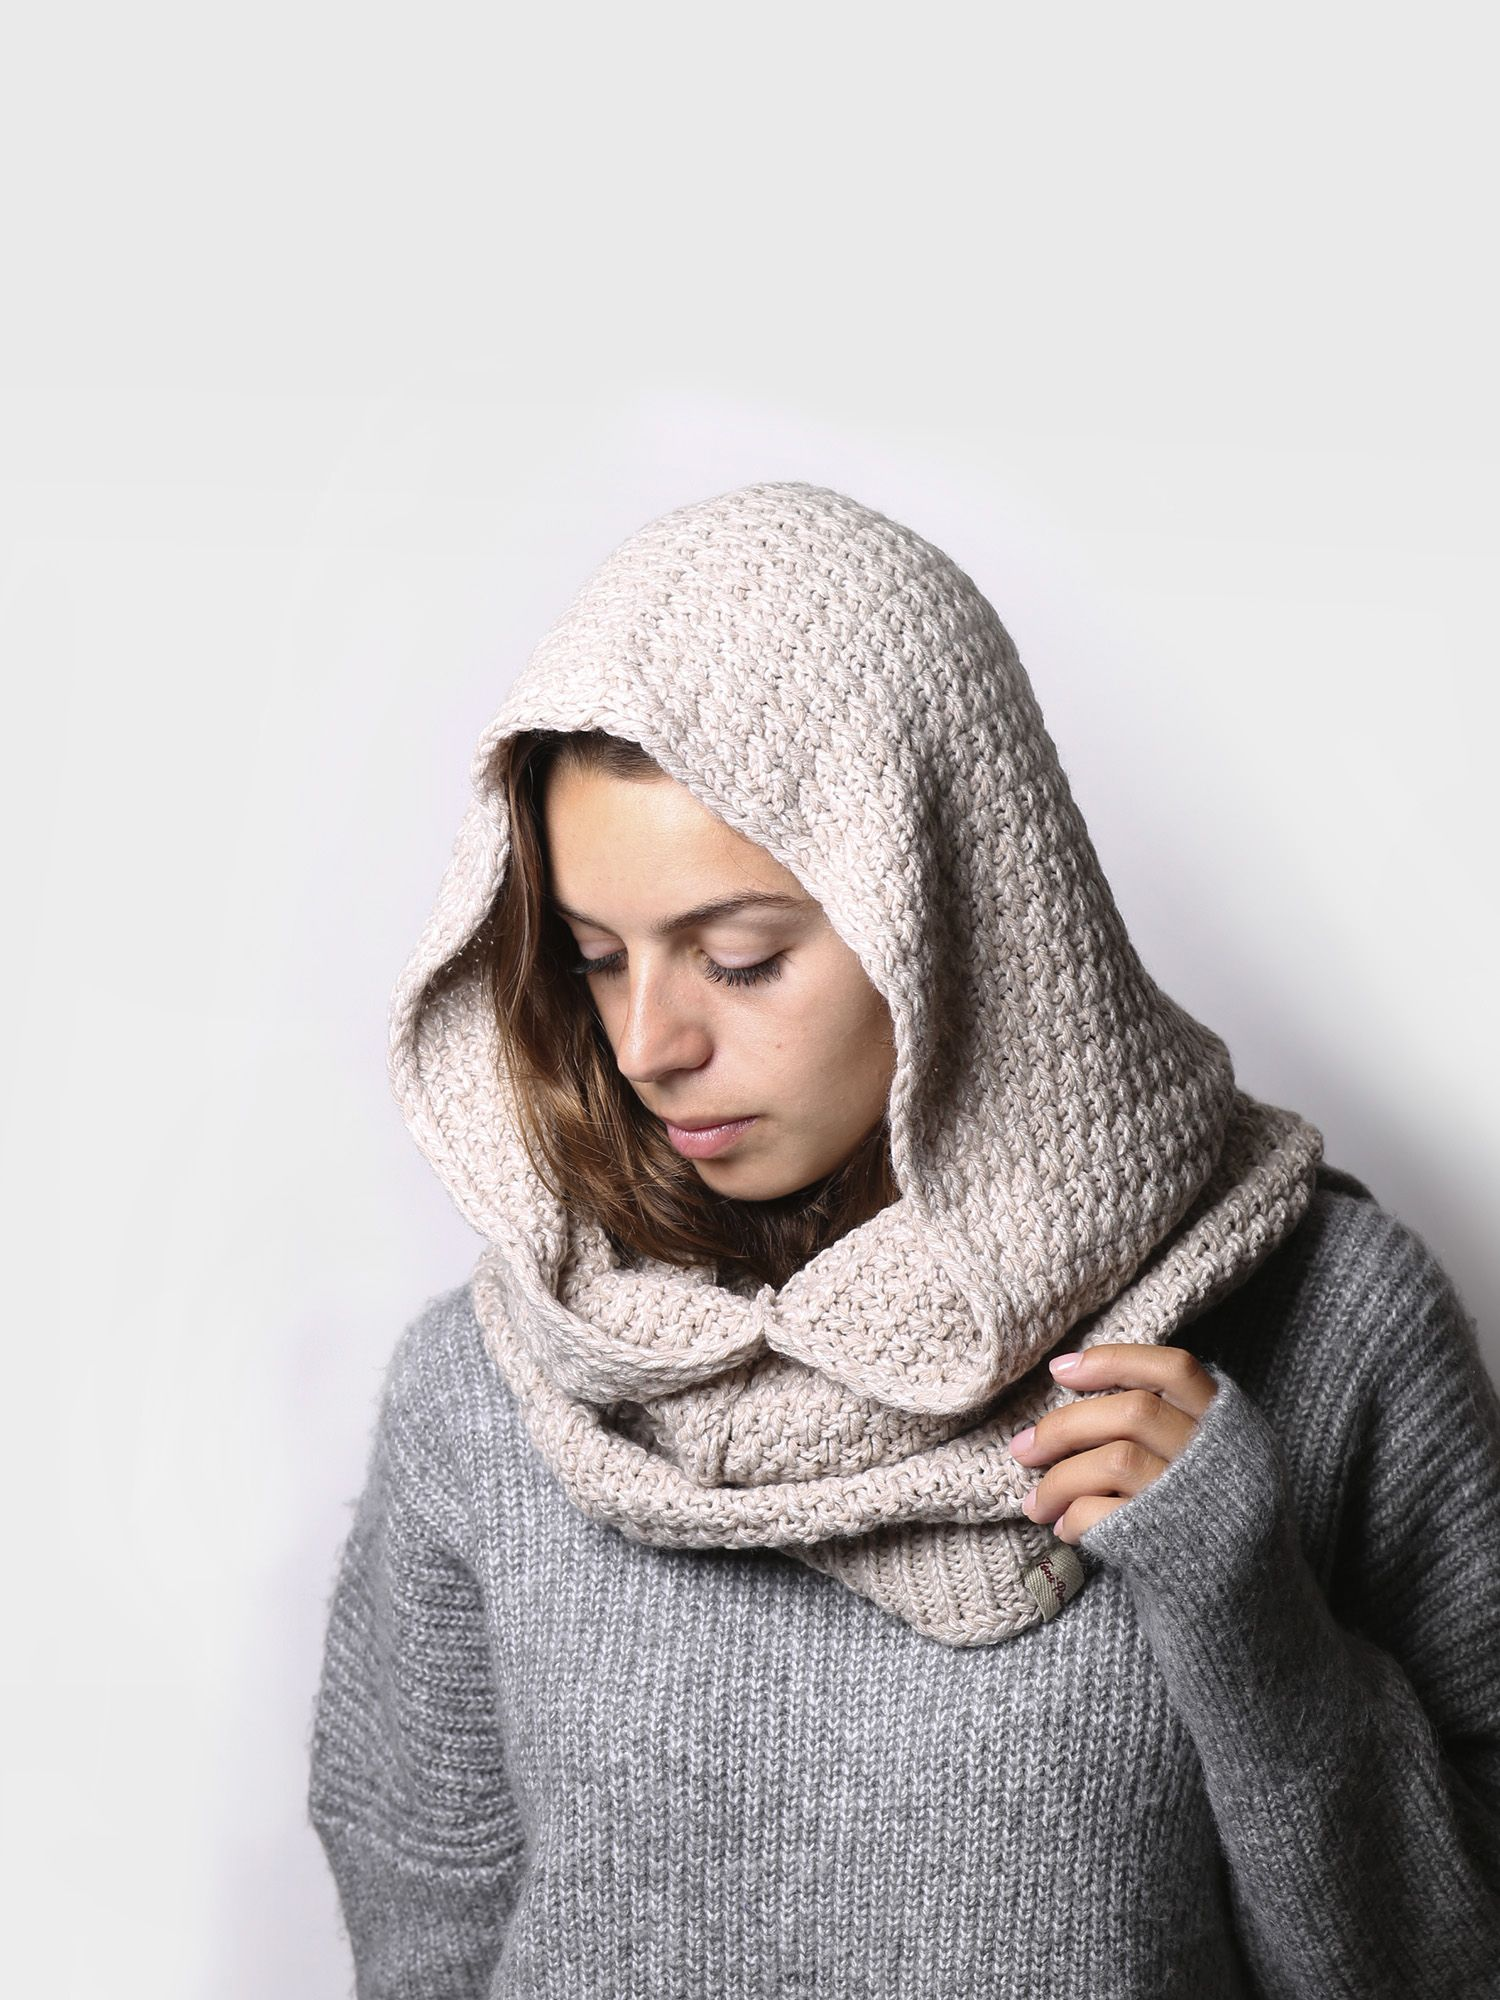 Accessories for women, hood made of wool and fabric - FENIX